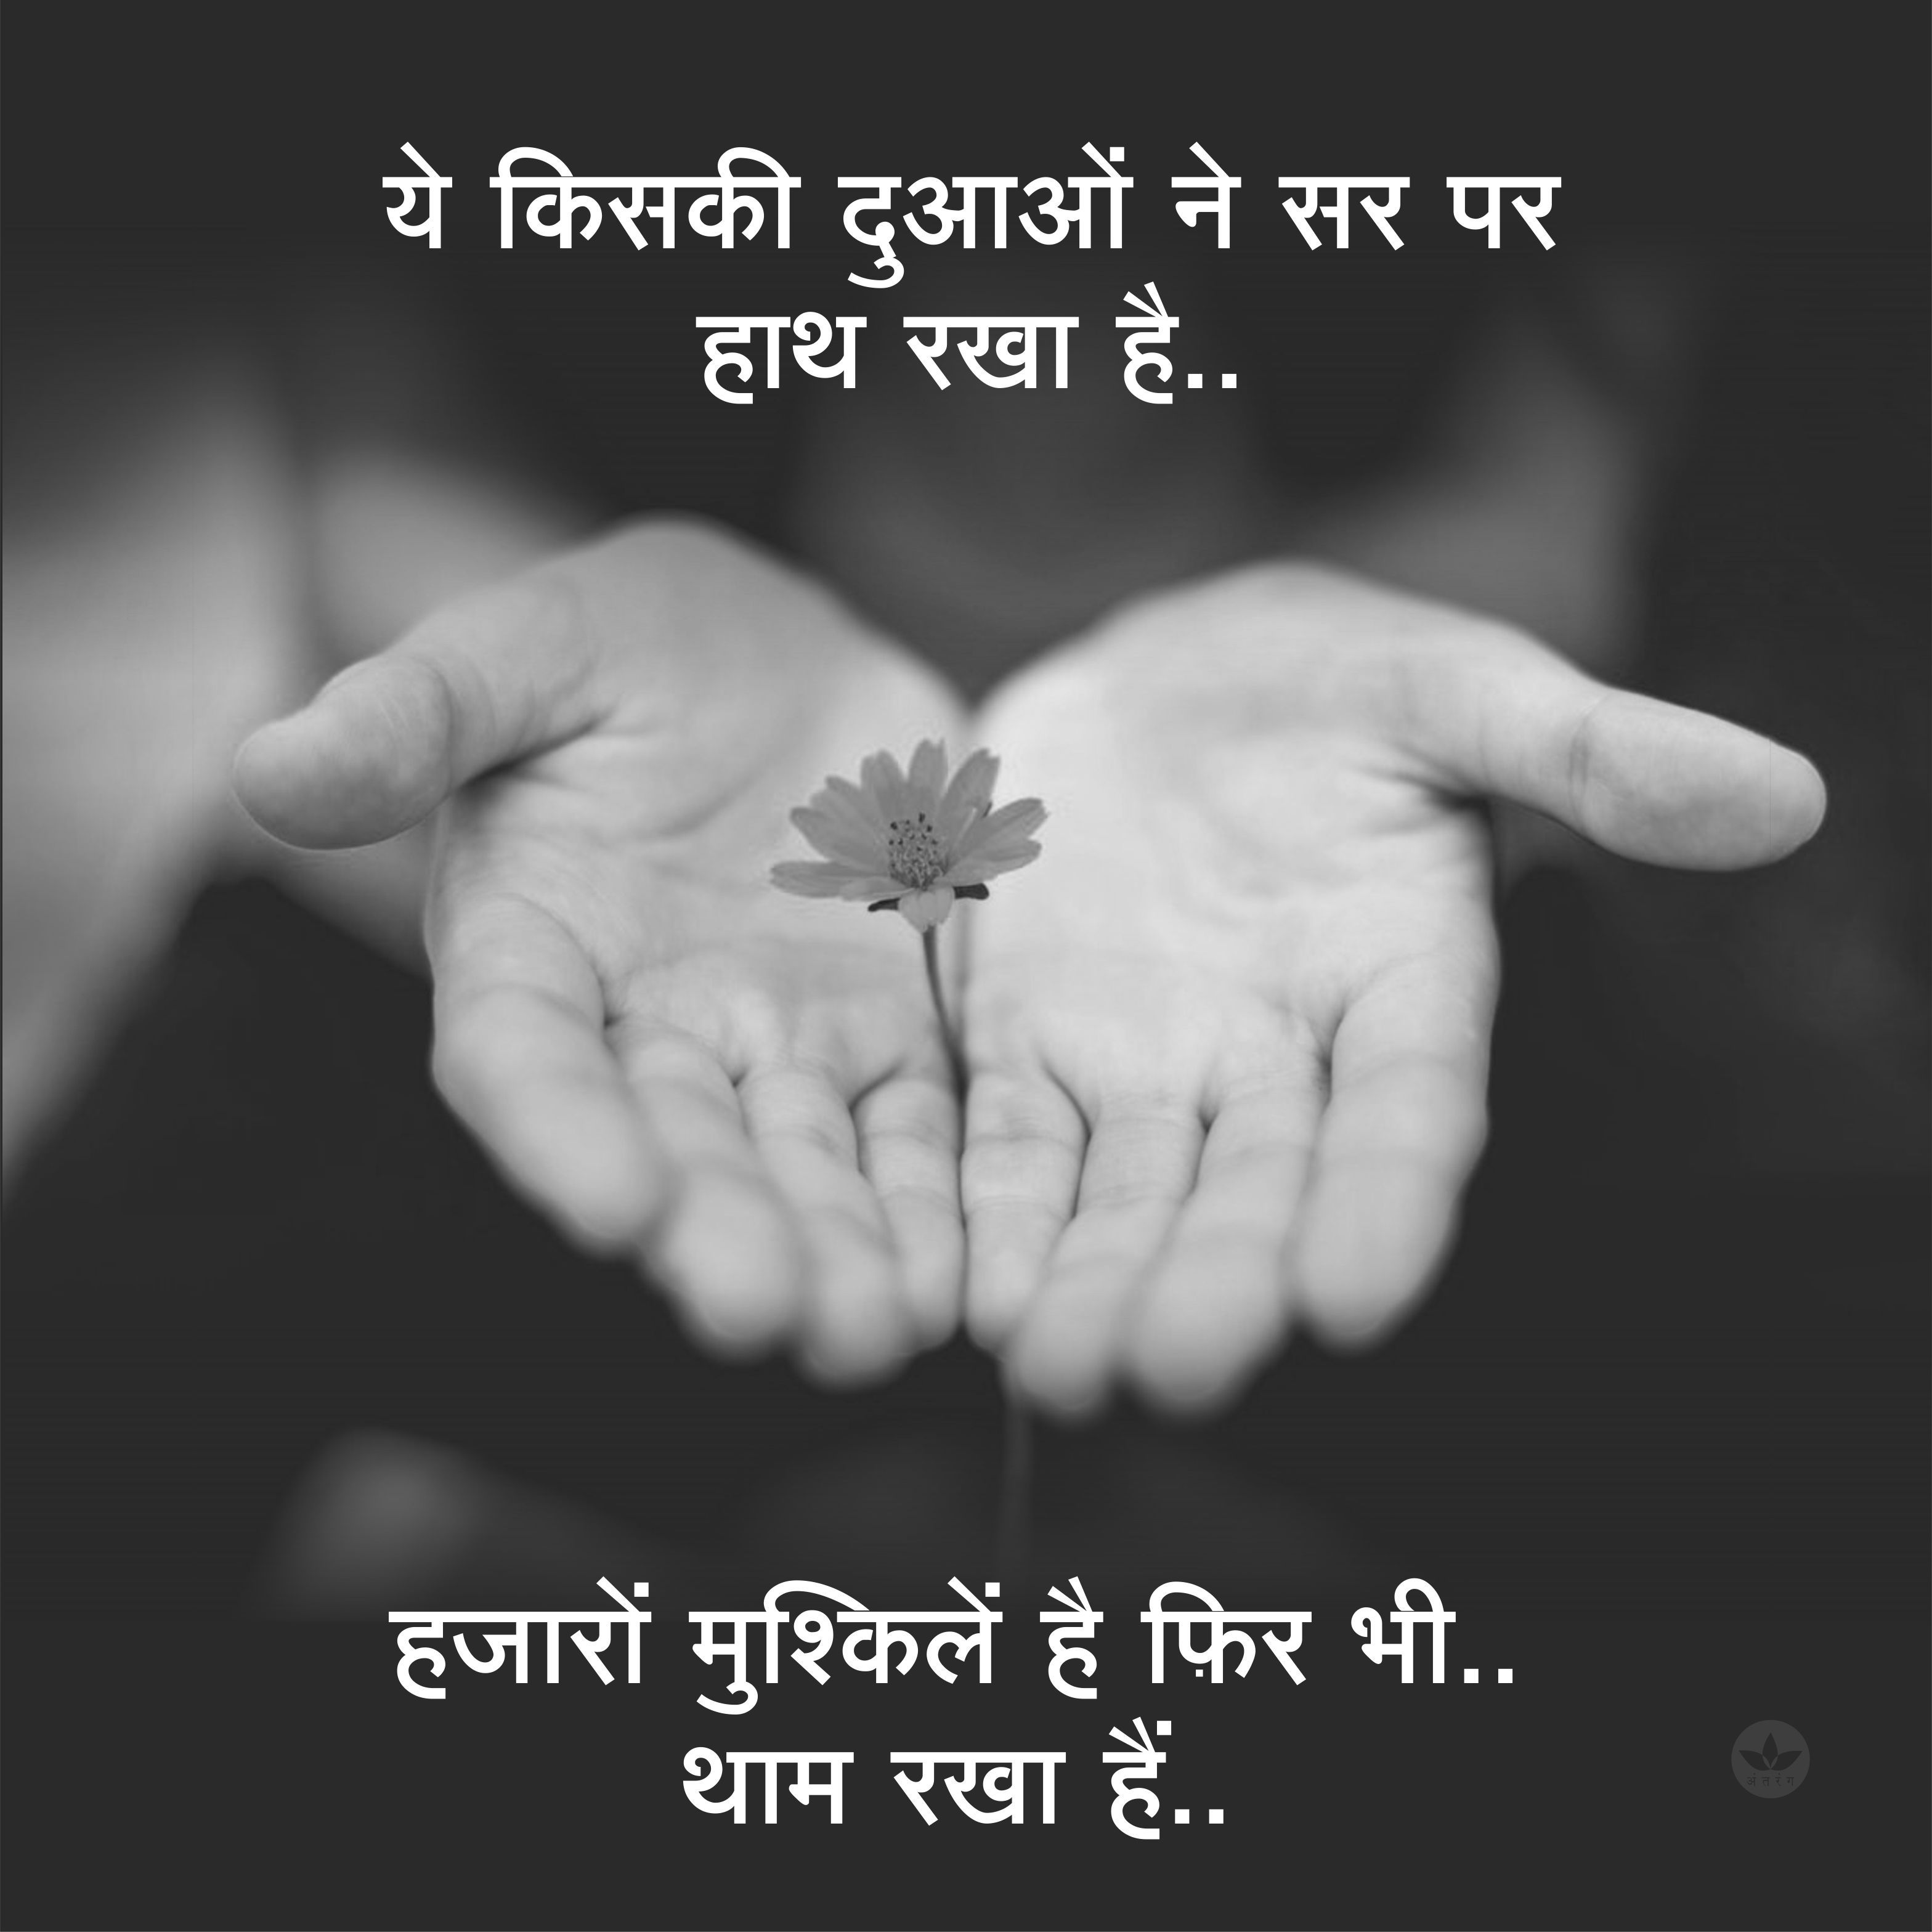 Nice lines Hindi quotes on life, Hindi quotes, Marathi